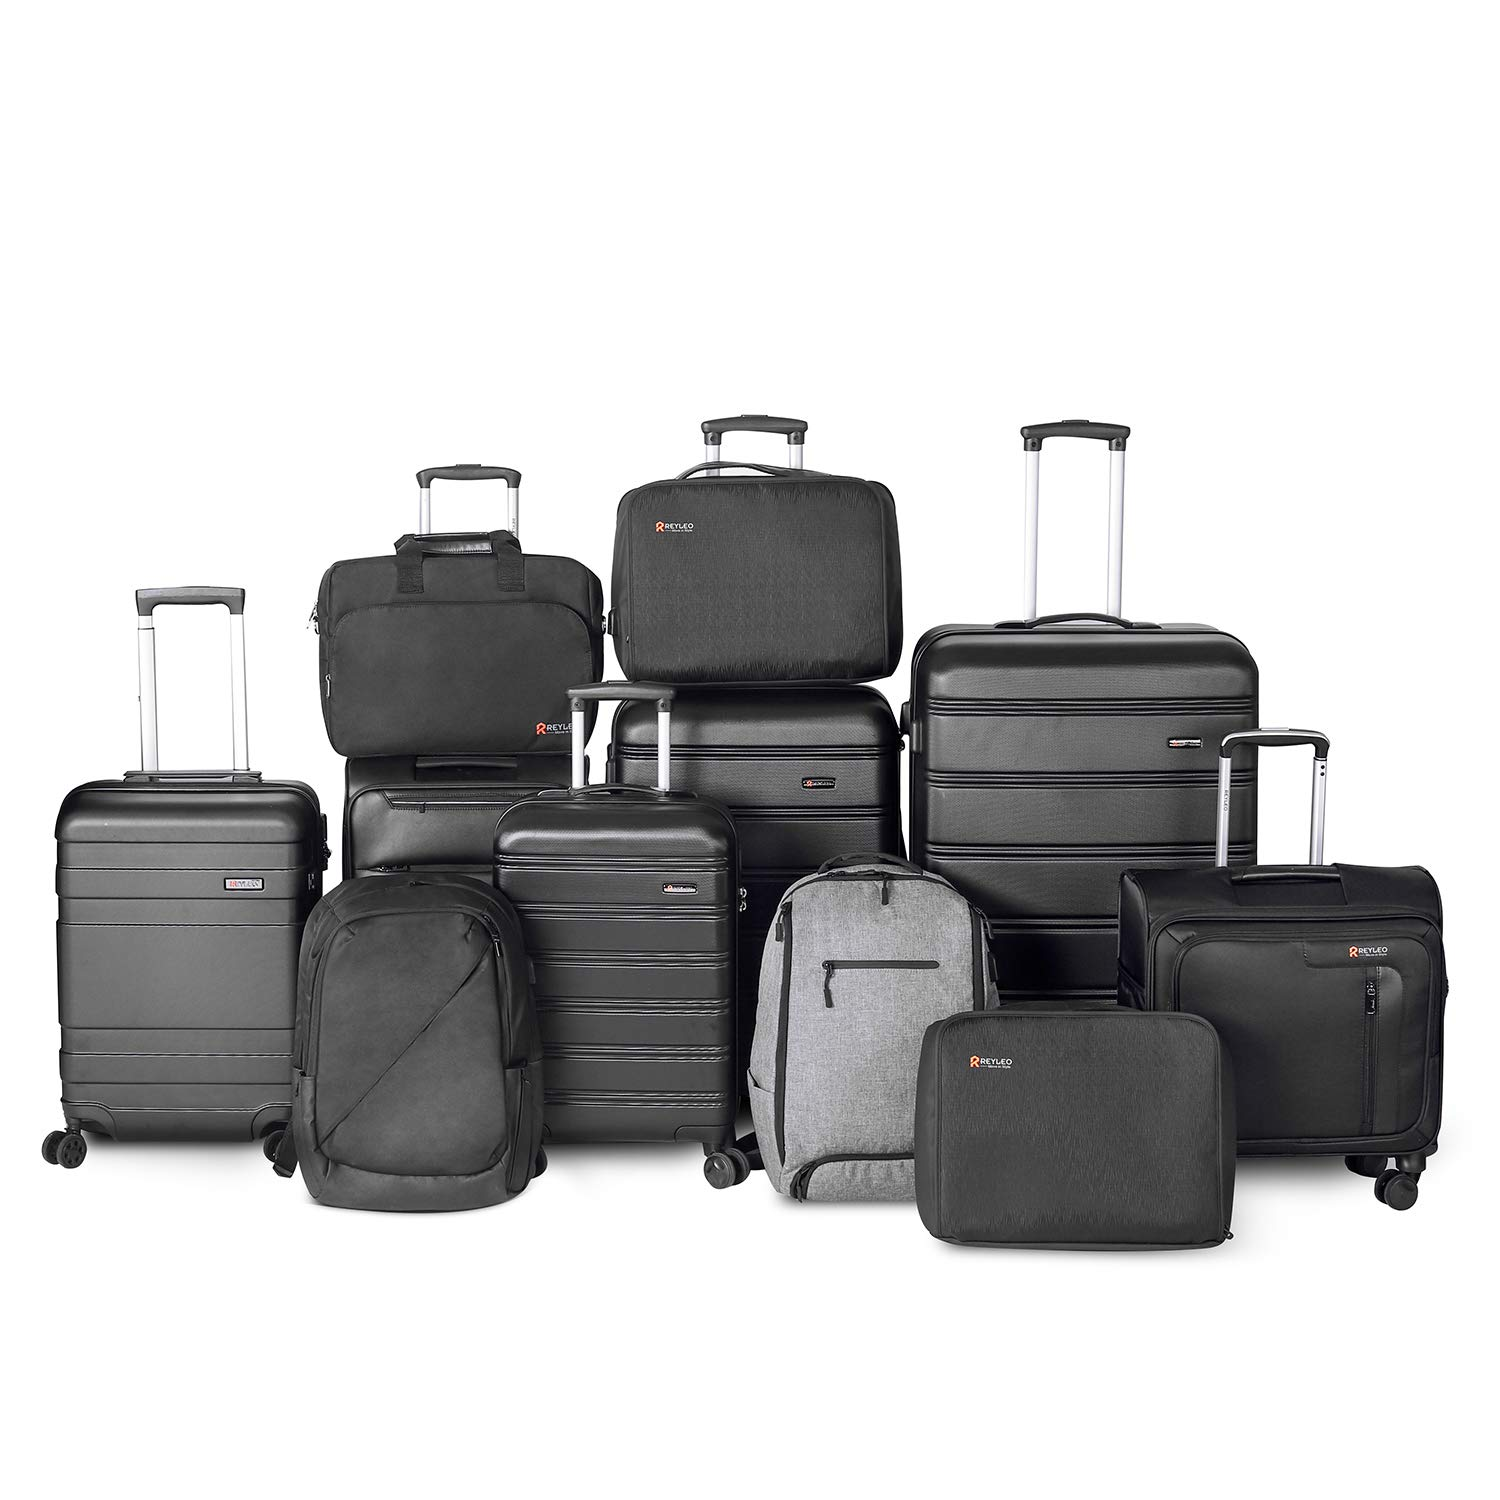 ee400b29398e REYLEO Executive Laptop Roller Cases Lightweight Briefcase Rolling Laptop  case with Padded Laptop Compartment Fits 14-17 inch Laptops 8 Wheels,Black  - ...